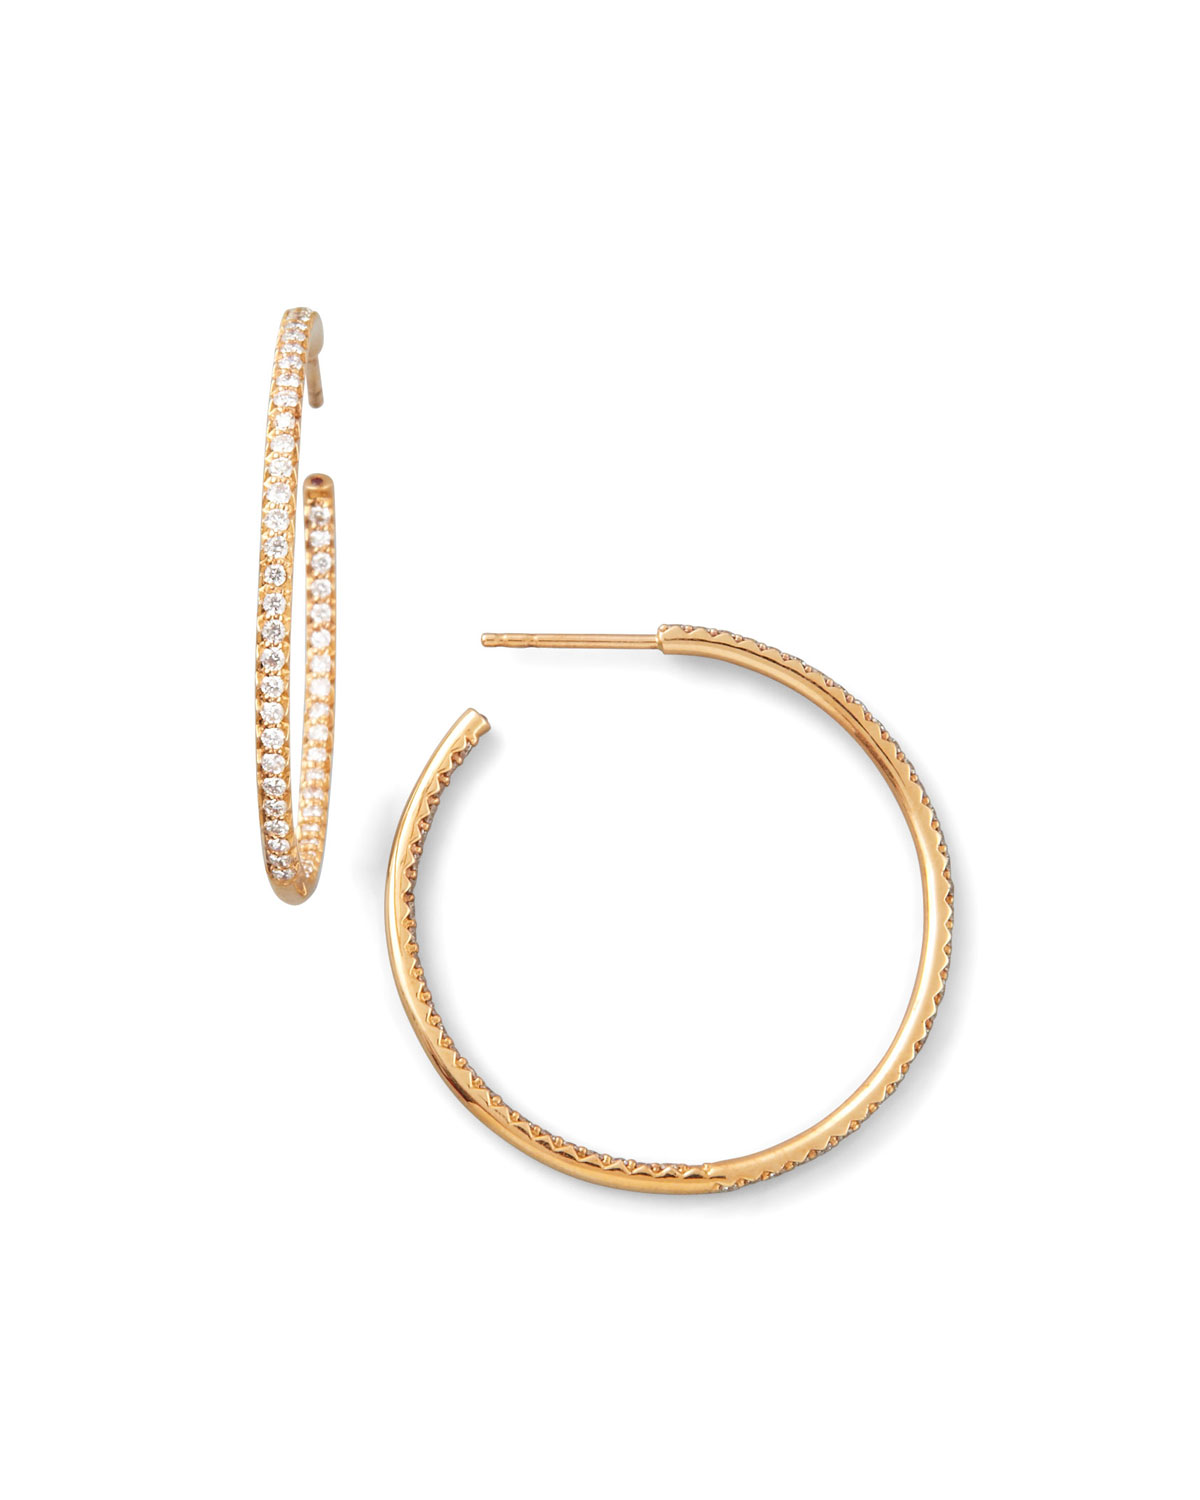 35mm Rose Gold Diamond Hoop Earring, 1.1ct